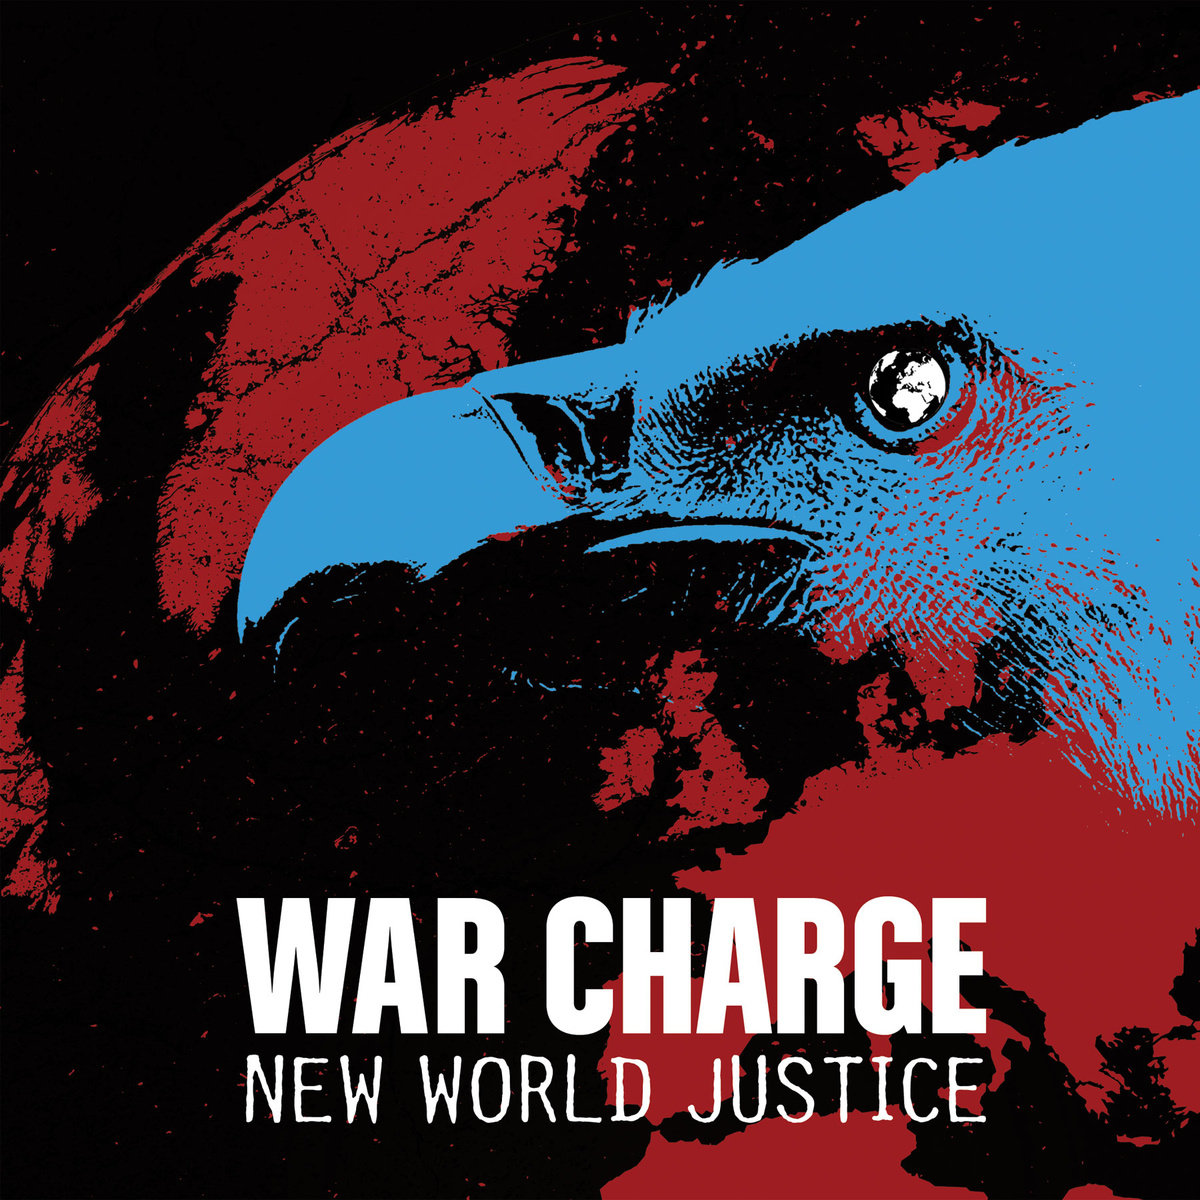 War Charge - New world justice 7